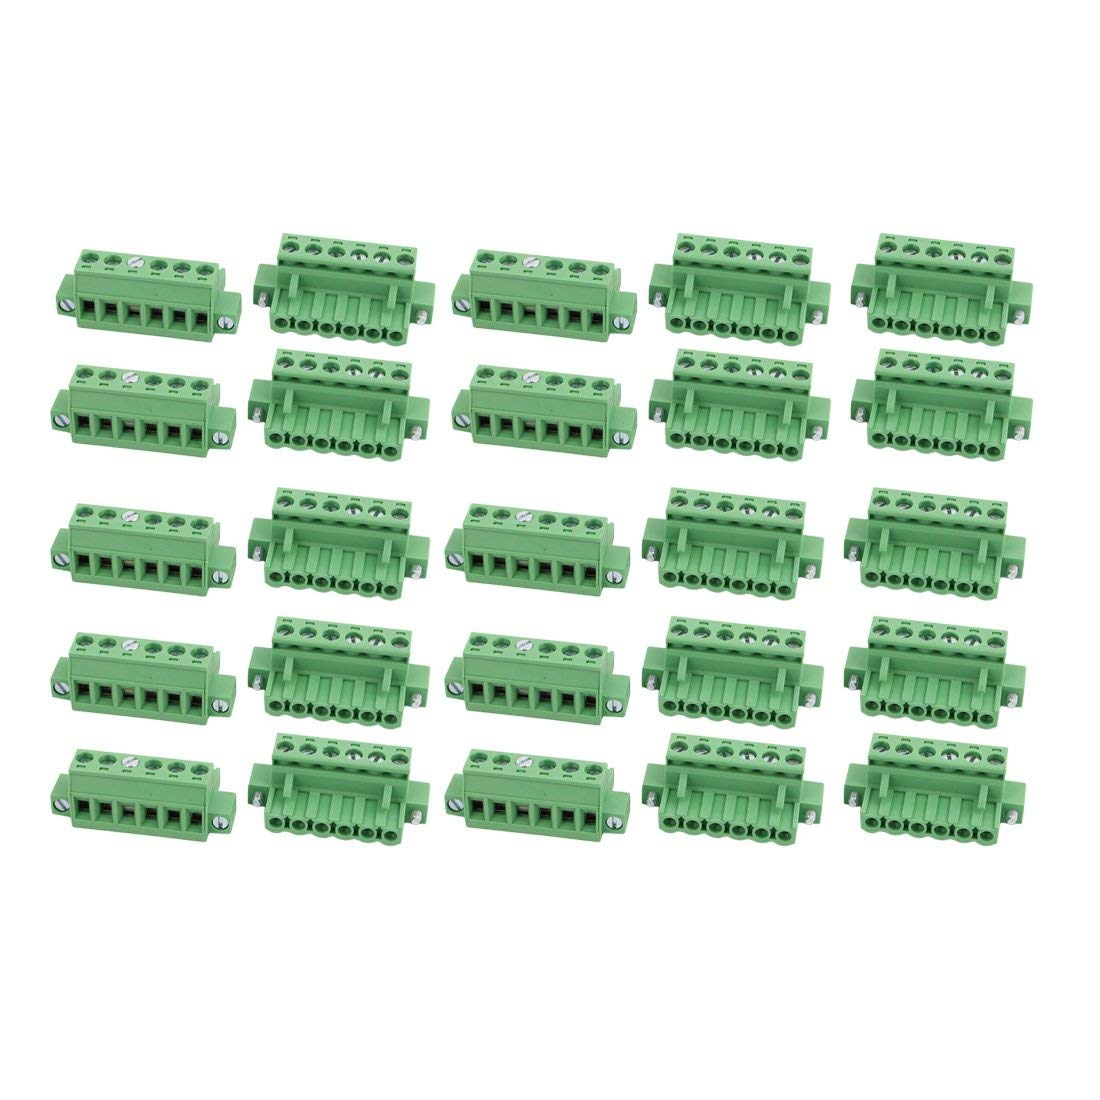 uxcell 25 Pcs LC1M AC300V 15A 5.0mm Pitch 6P PCB Mount Terminal Block Wire Connector